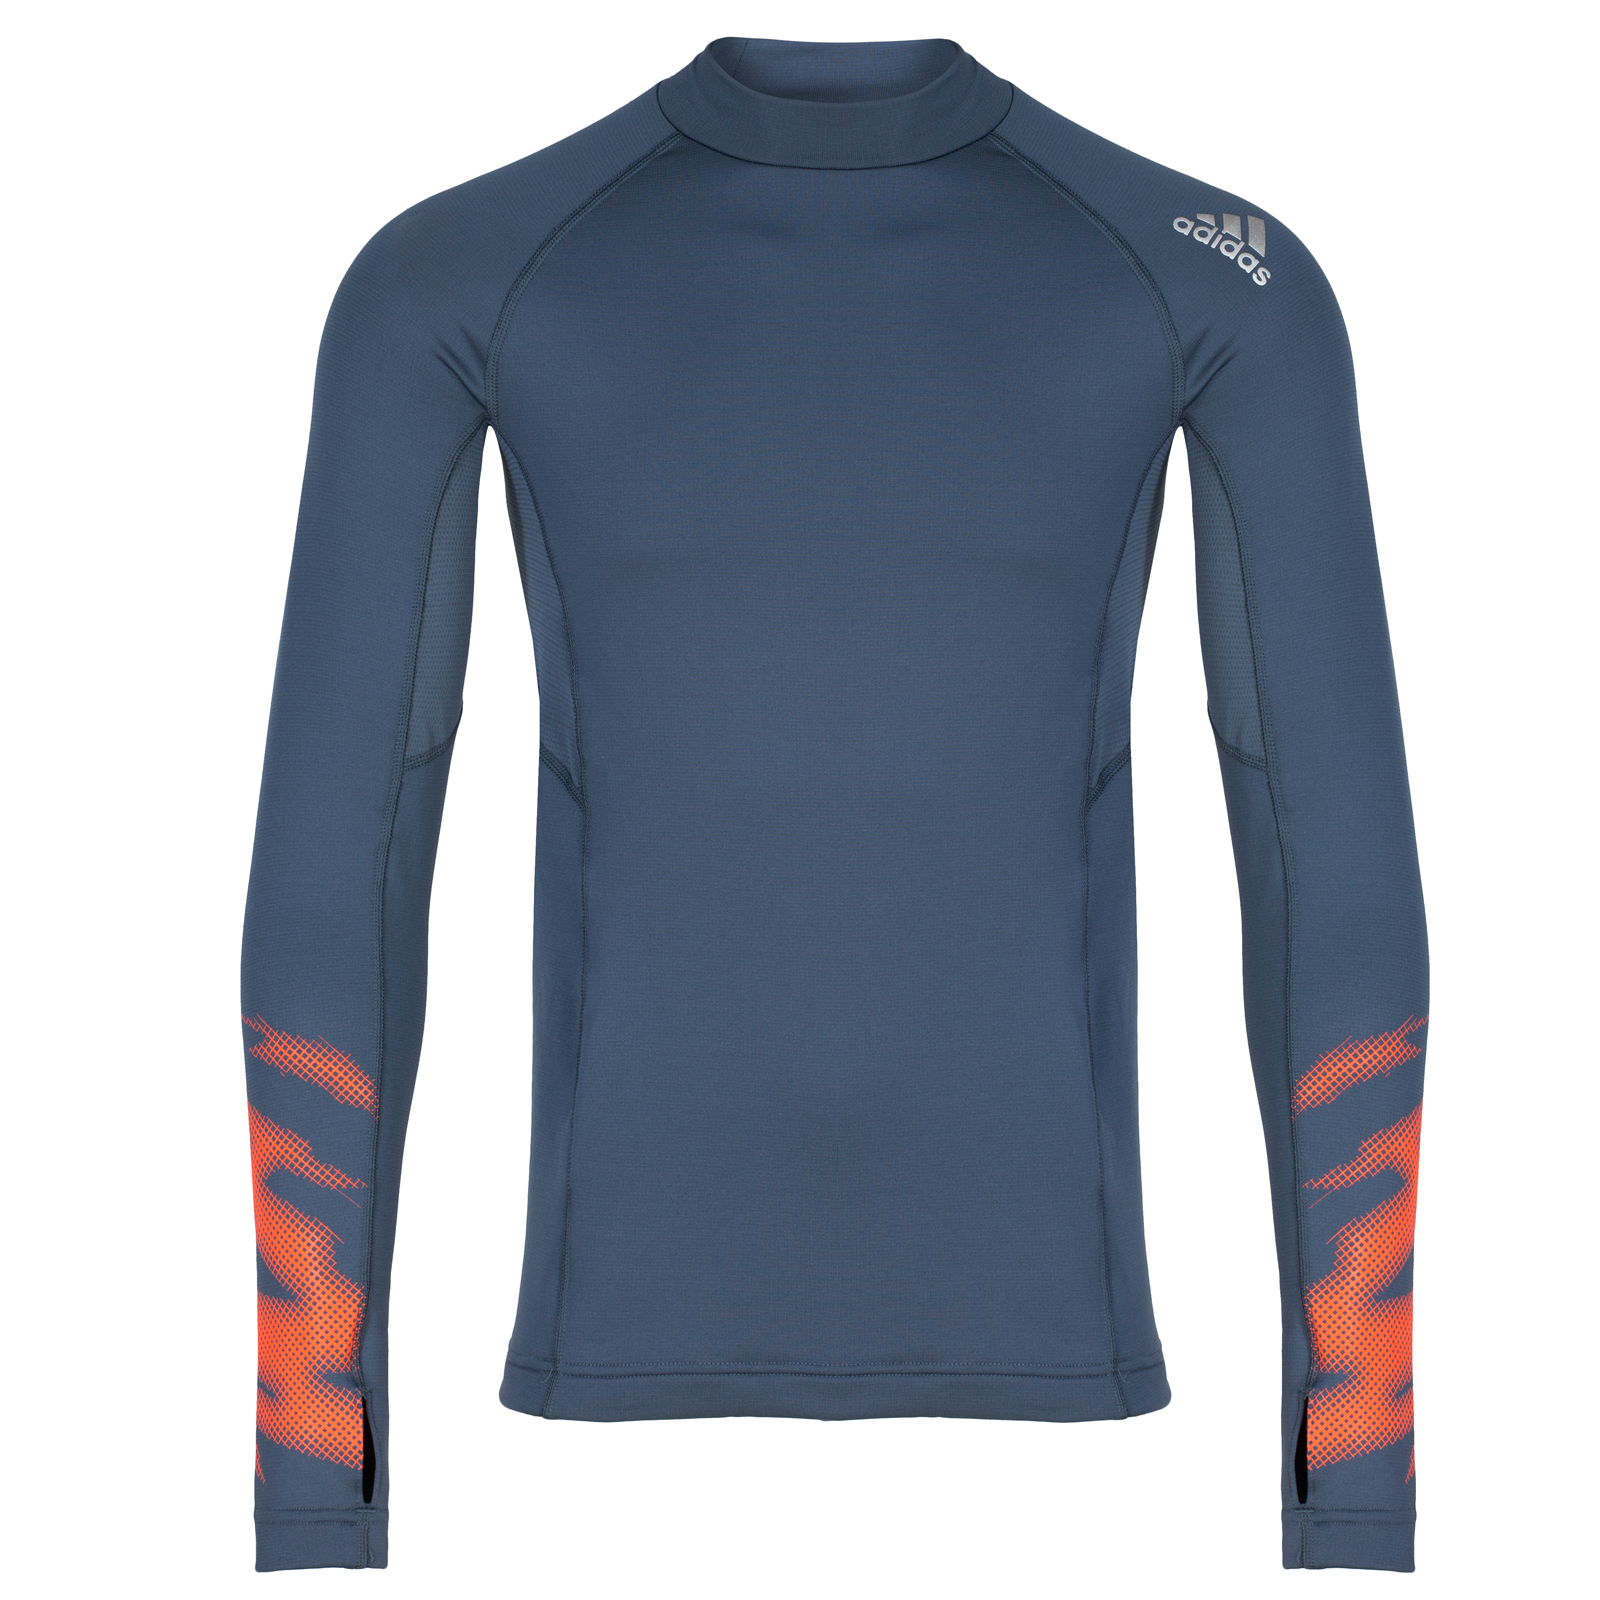 Adidas Performance Mens Long Sleeve Mock Running Top